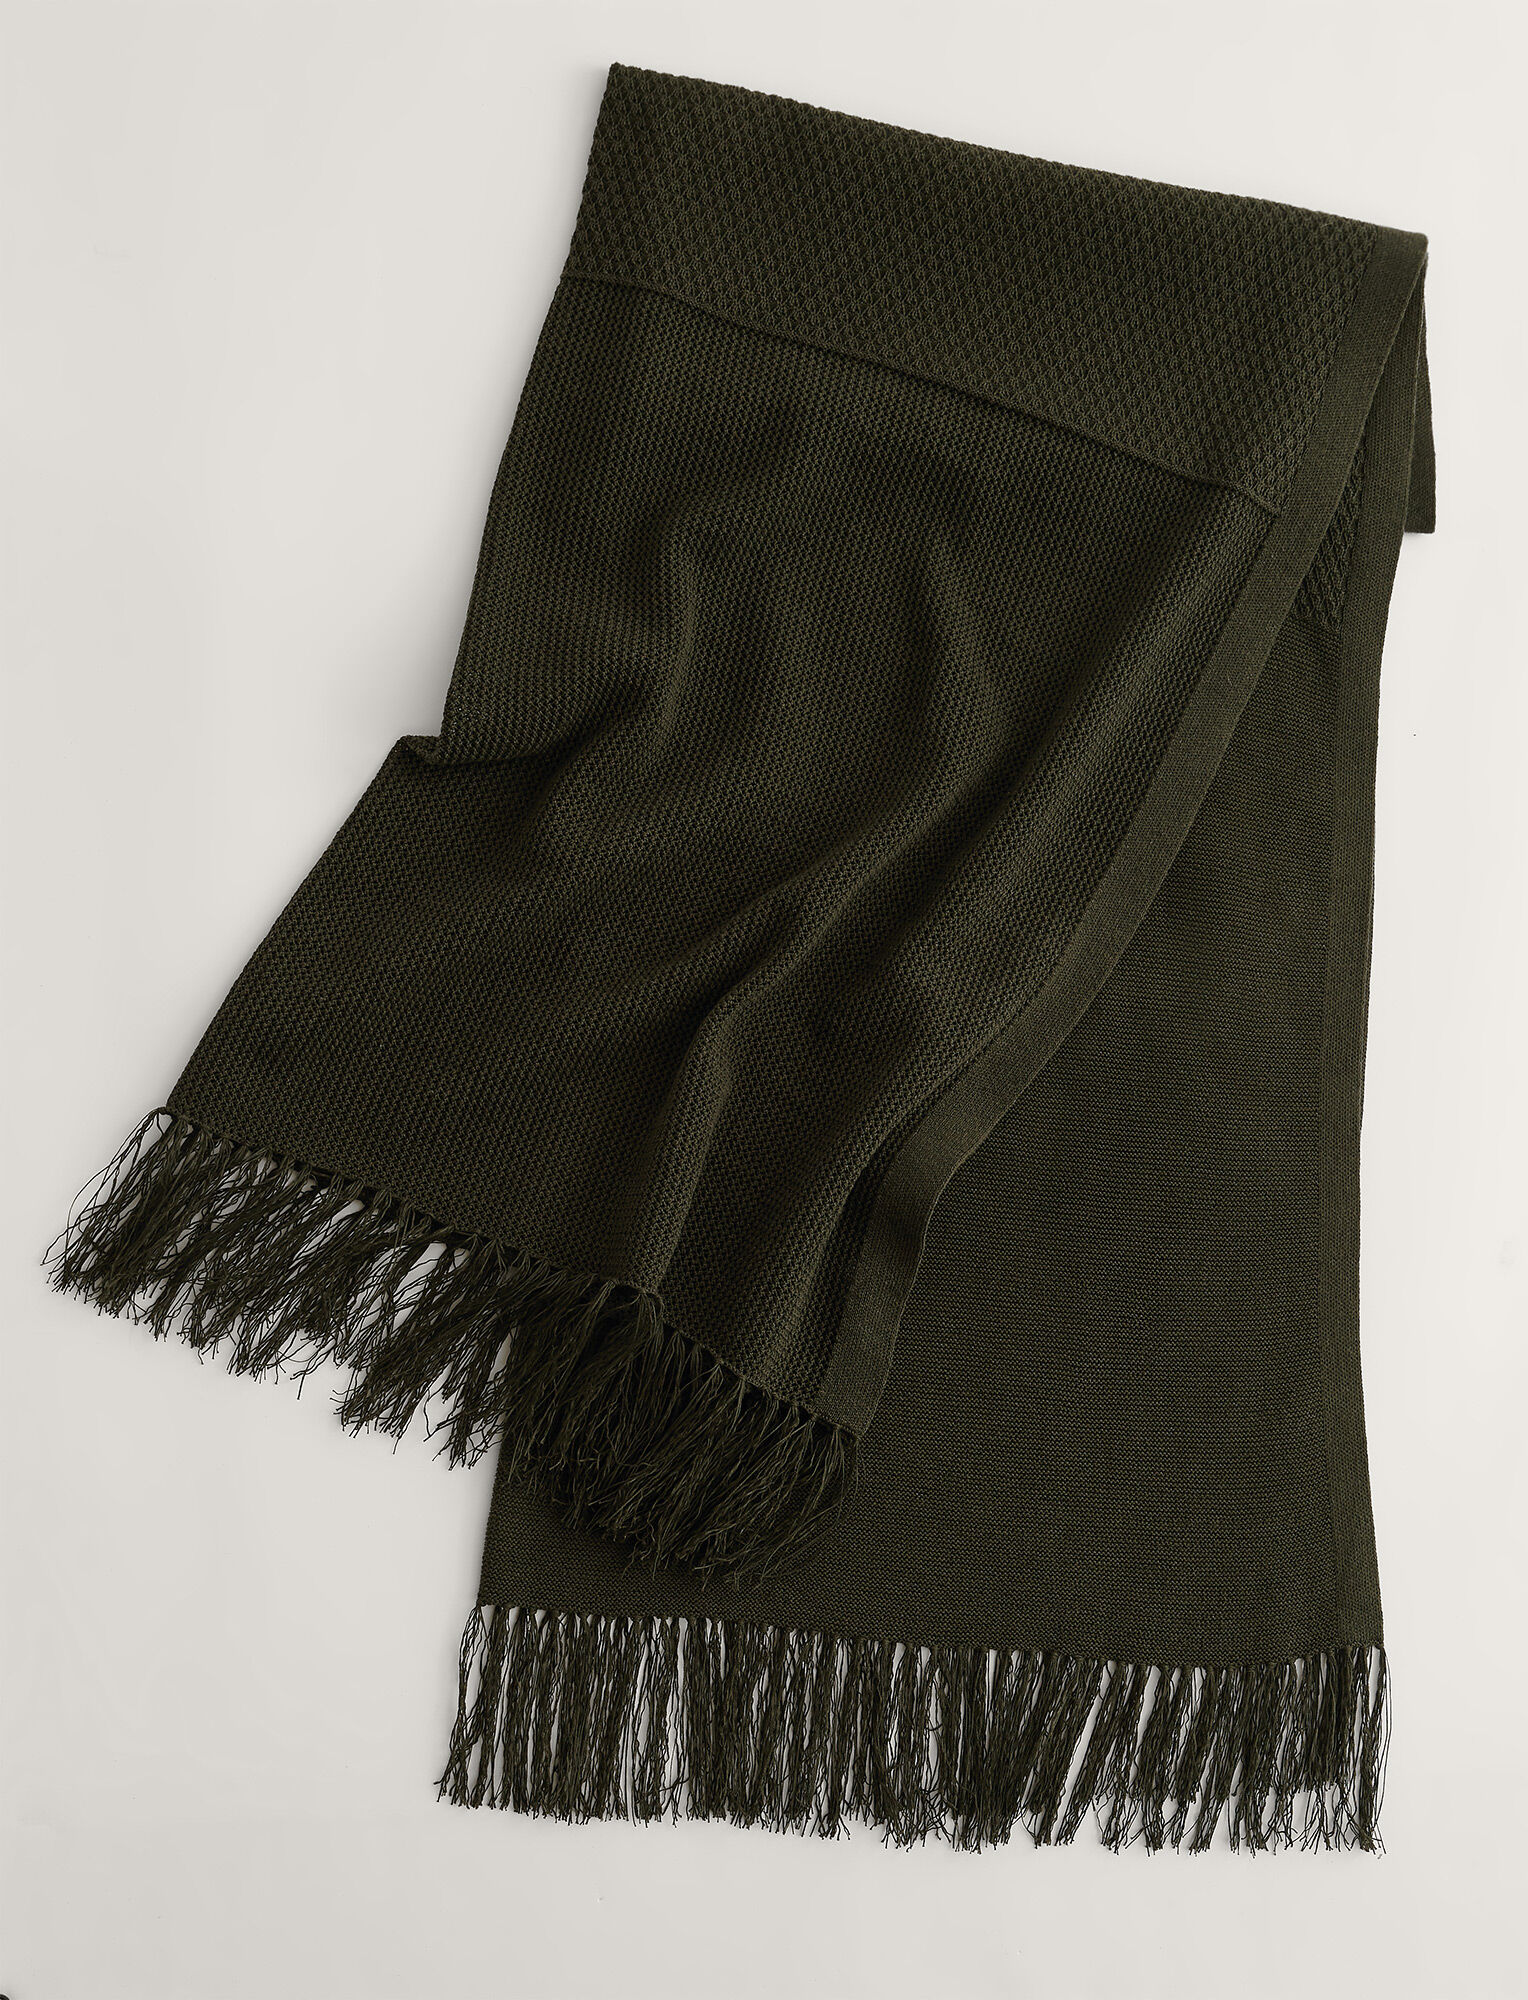 Joseph, Crispy Cotton Pareo Scarf, in ARGIL